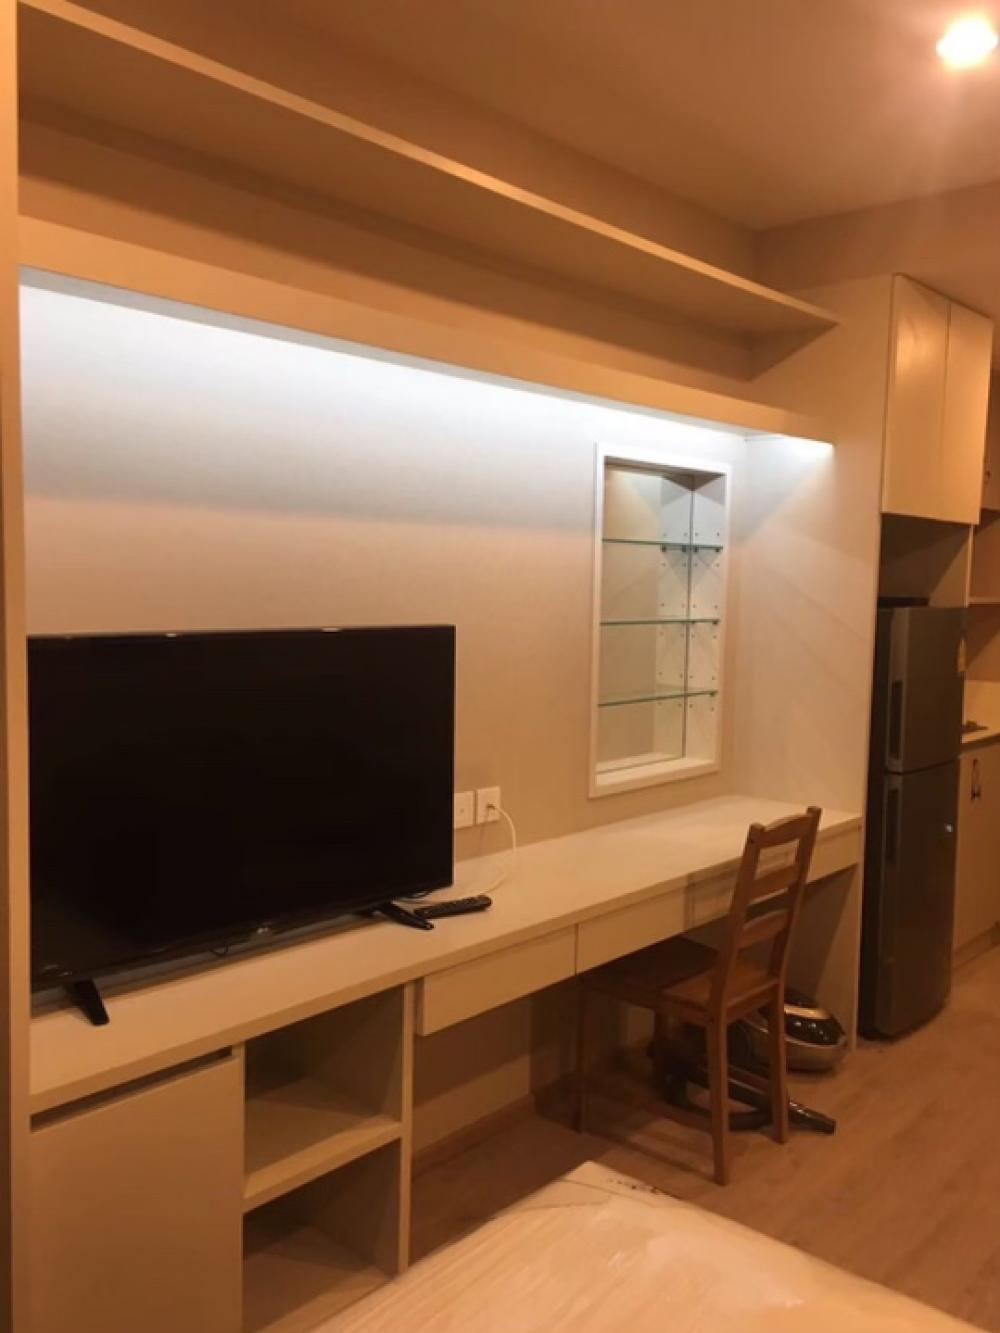 For RentCondoSiam Paragon ,Chulalongkorn,Samyan : Give us an urgent, new condition room, Ideo Q Chula Samyan, 22 sqm room with furniture and electrical appliances.